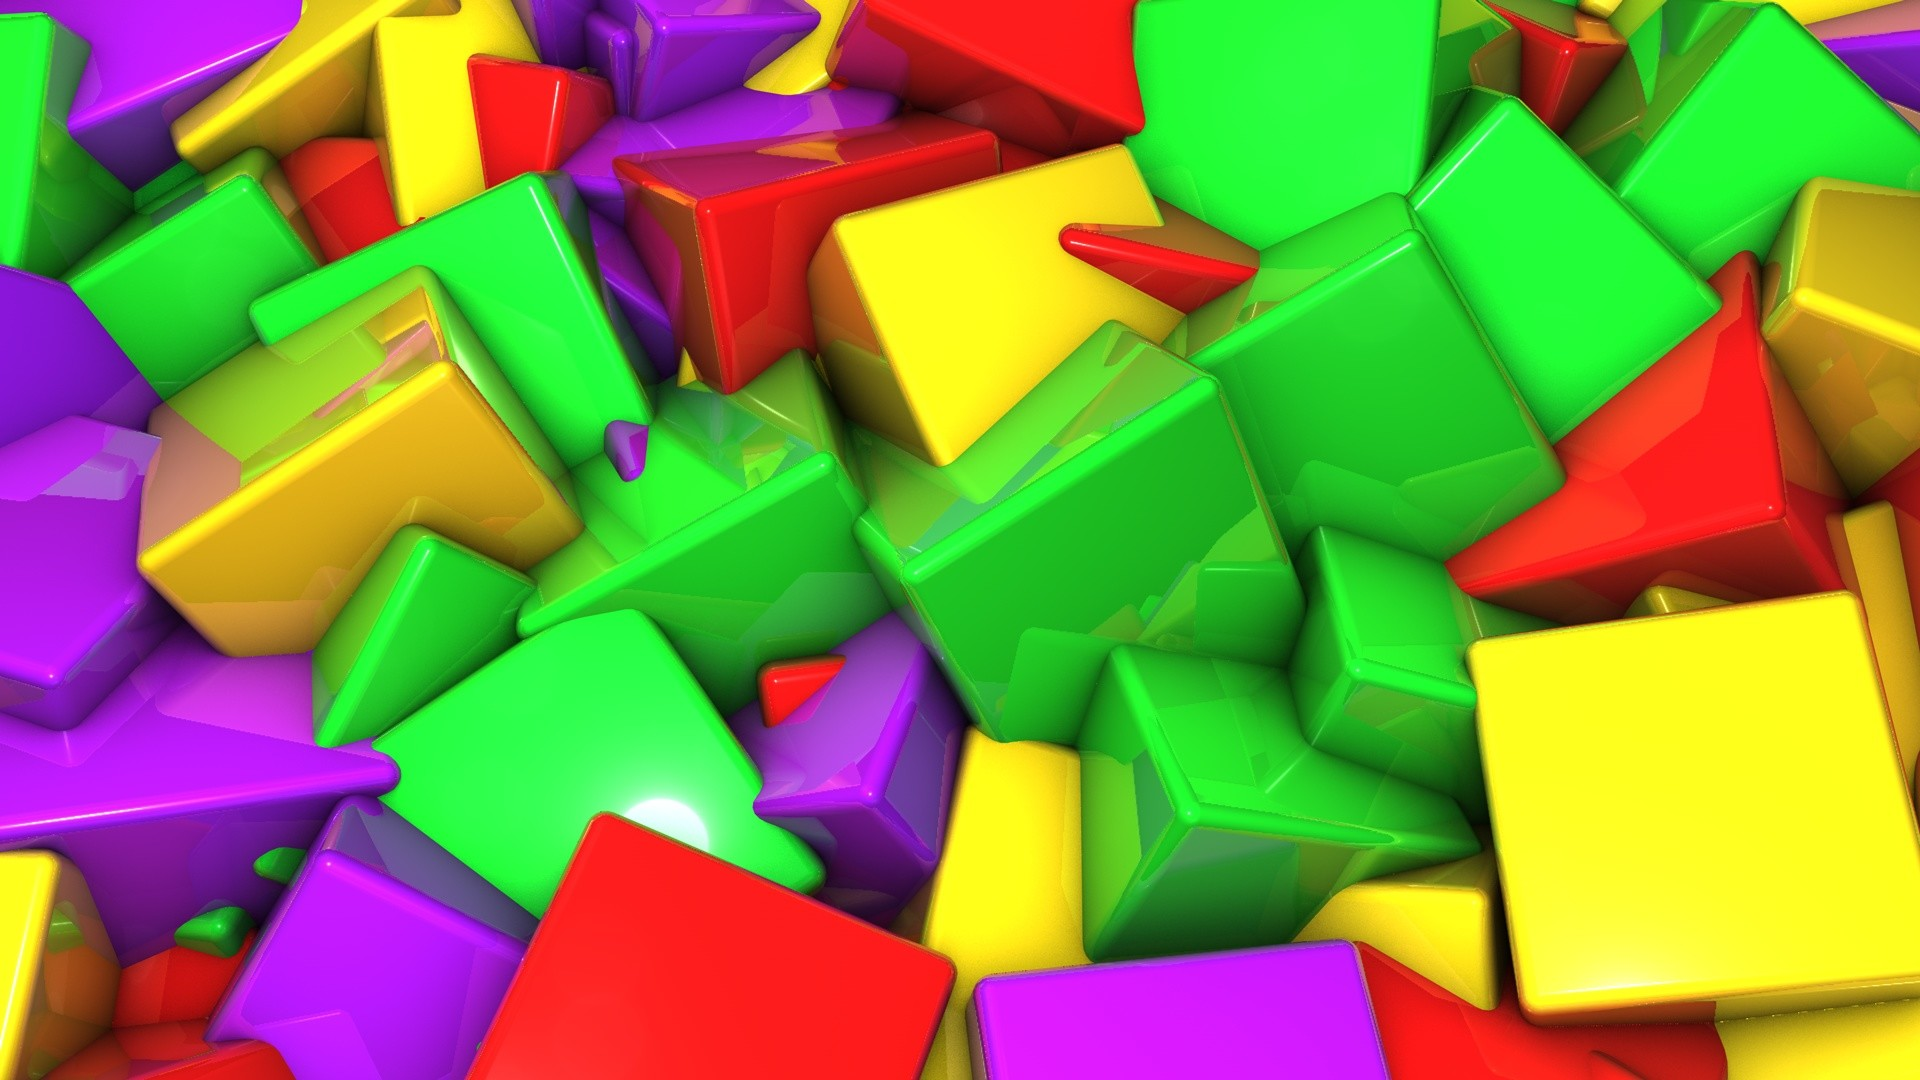 Colorful 3D Wallpaper 1